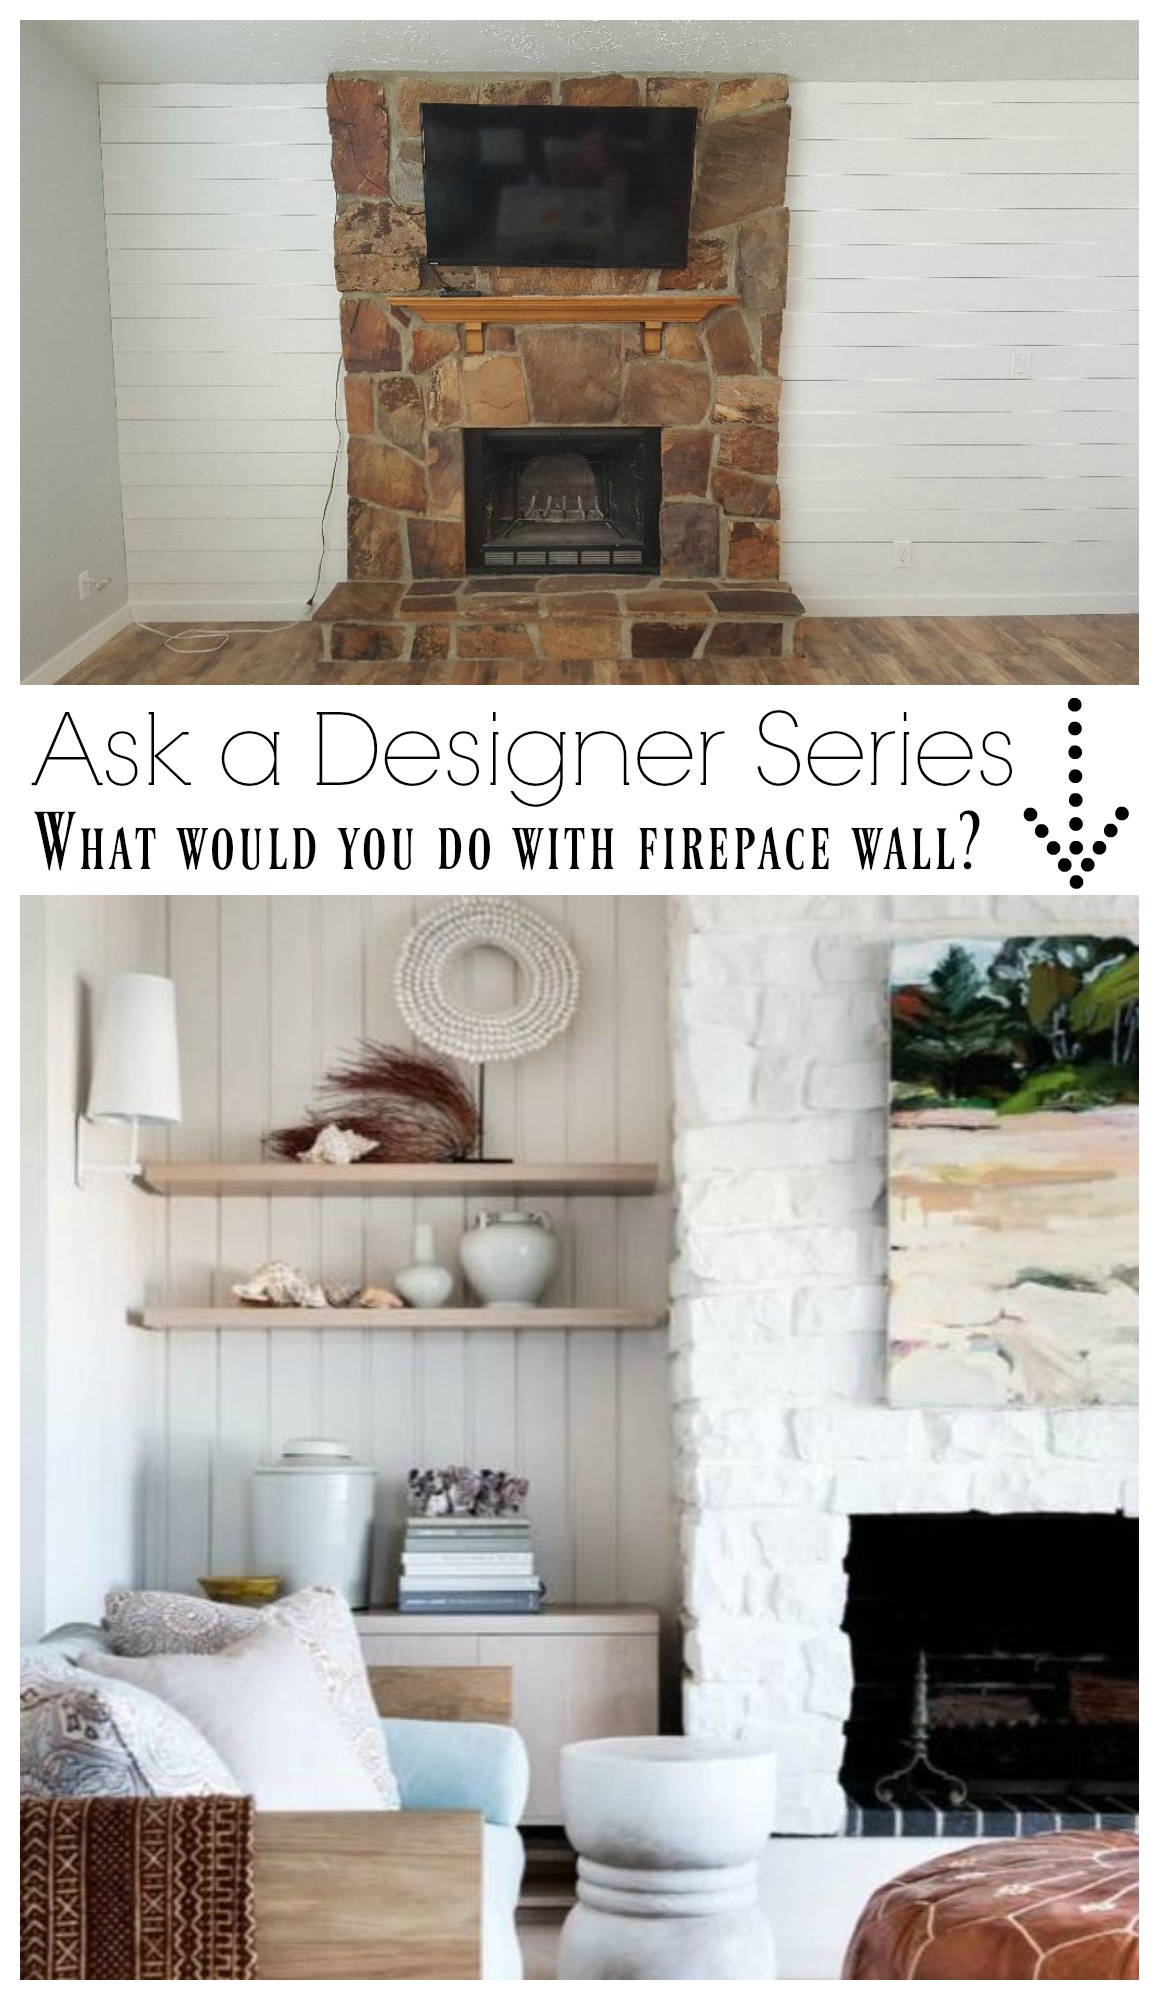 Ask a Designer Series- What would you do with Fireplace wall?